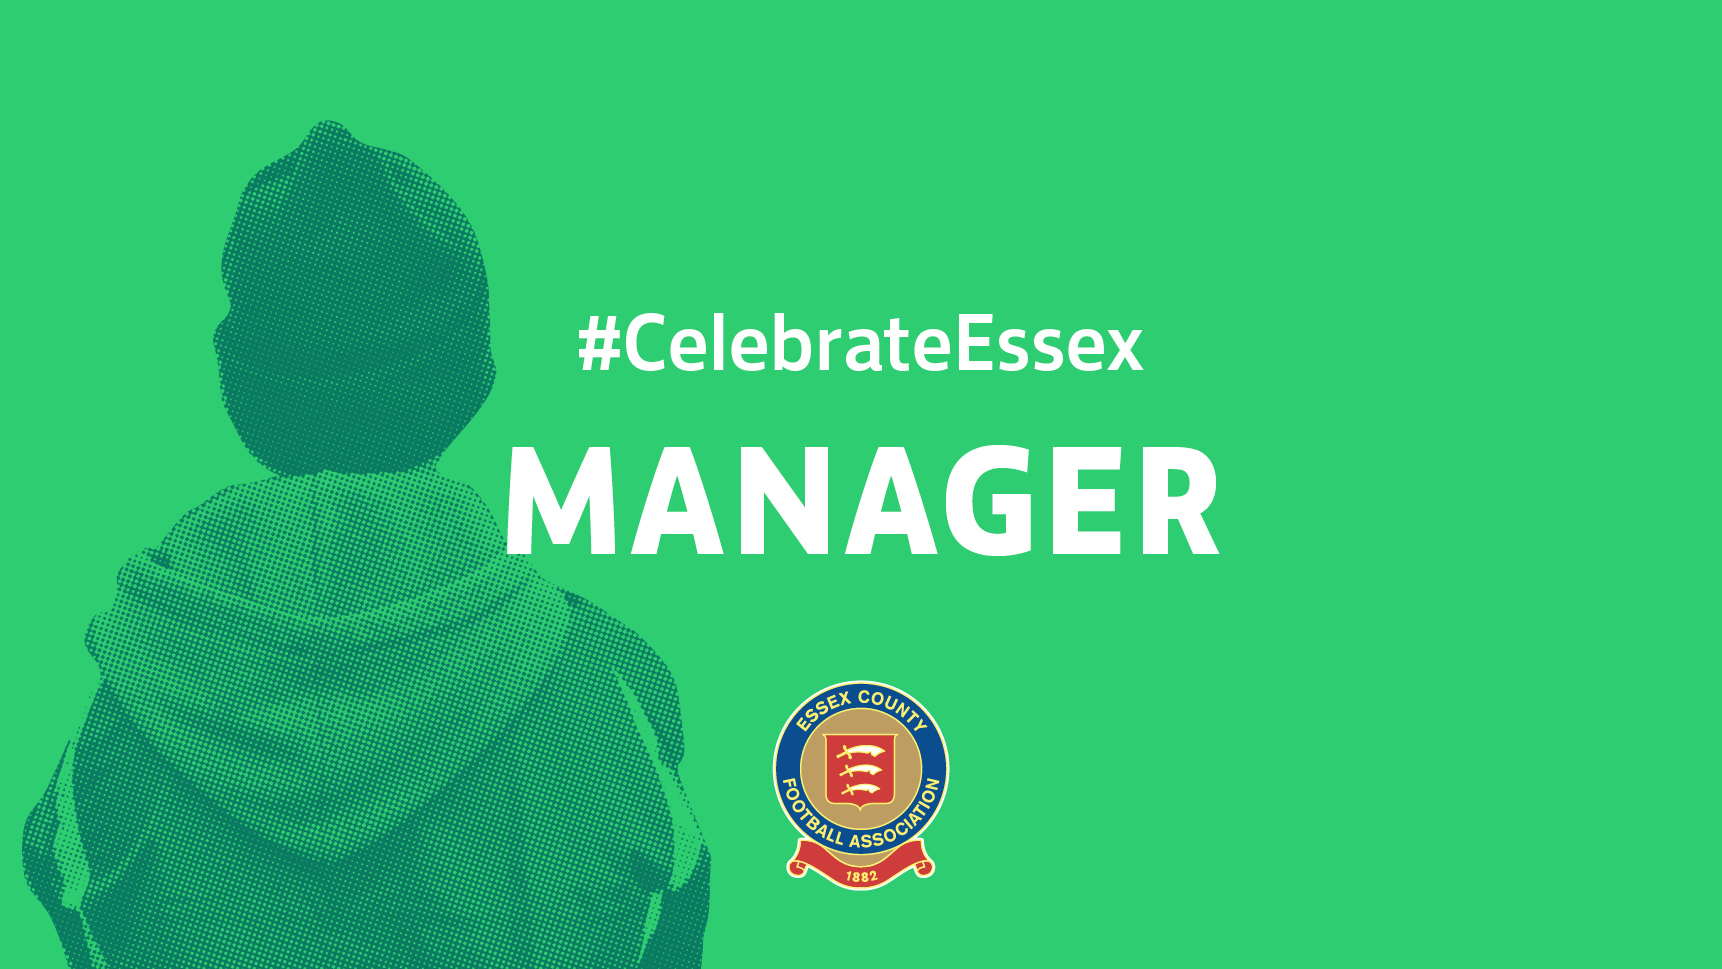 #CelebrateEssex Manager